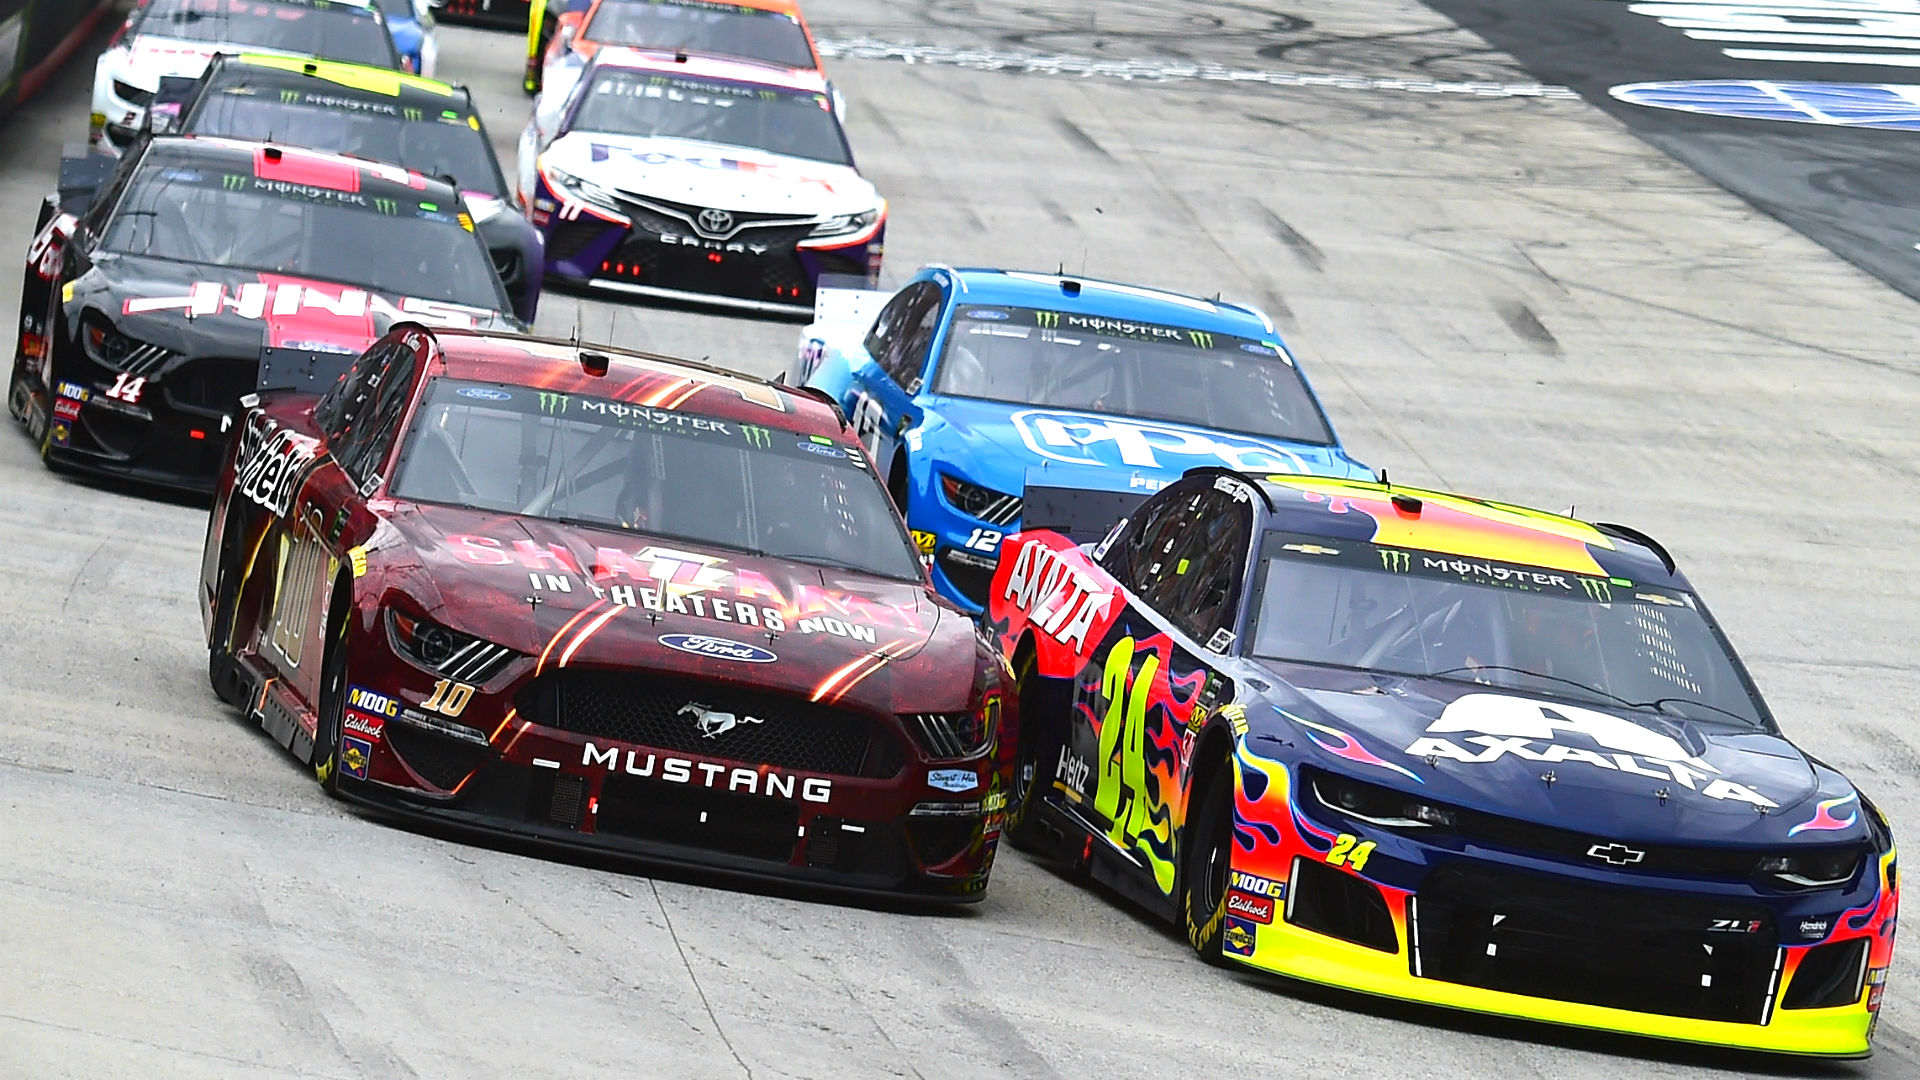 Odds for NASCAR race at Bristol: Expert picks & favorites to win Sunday's Cup Series race 1